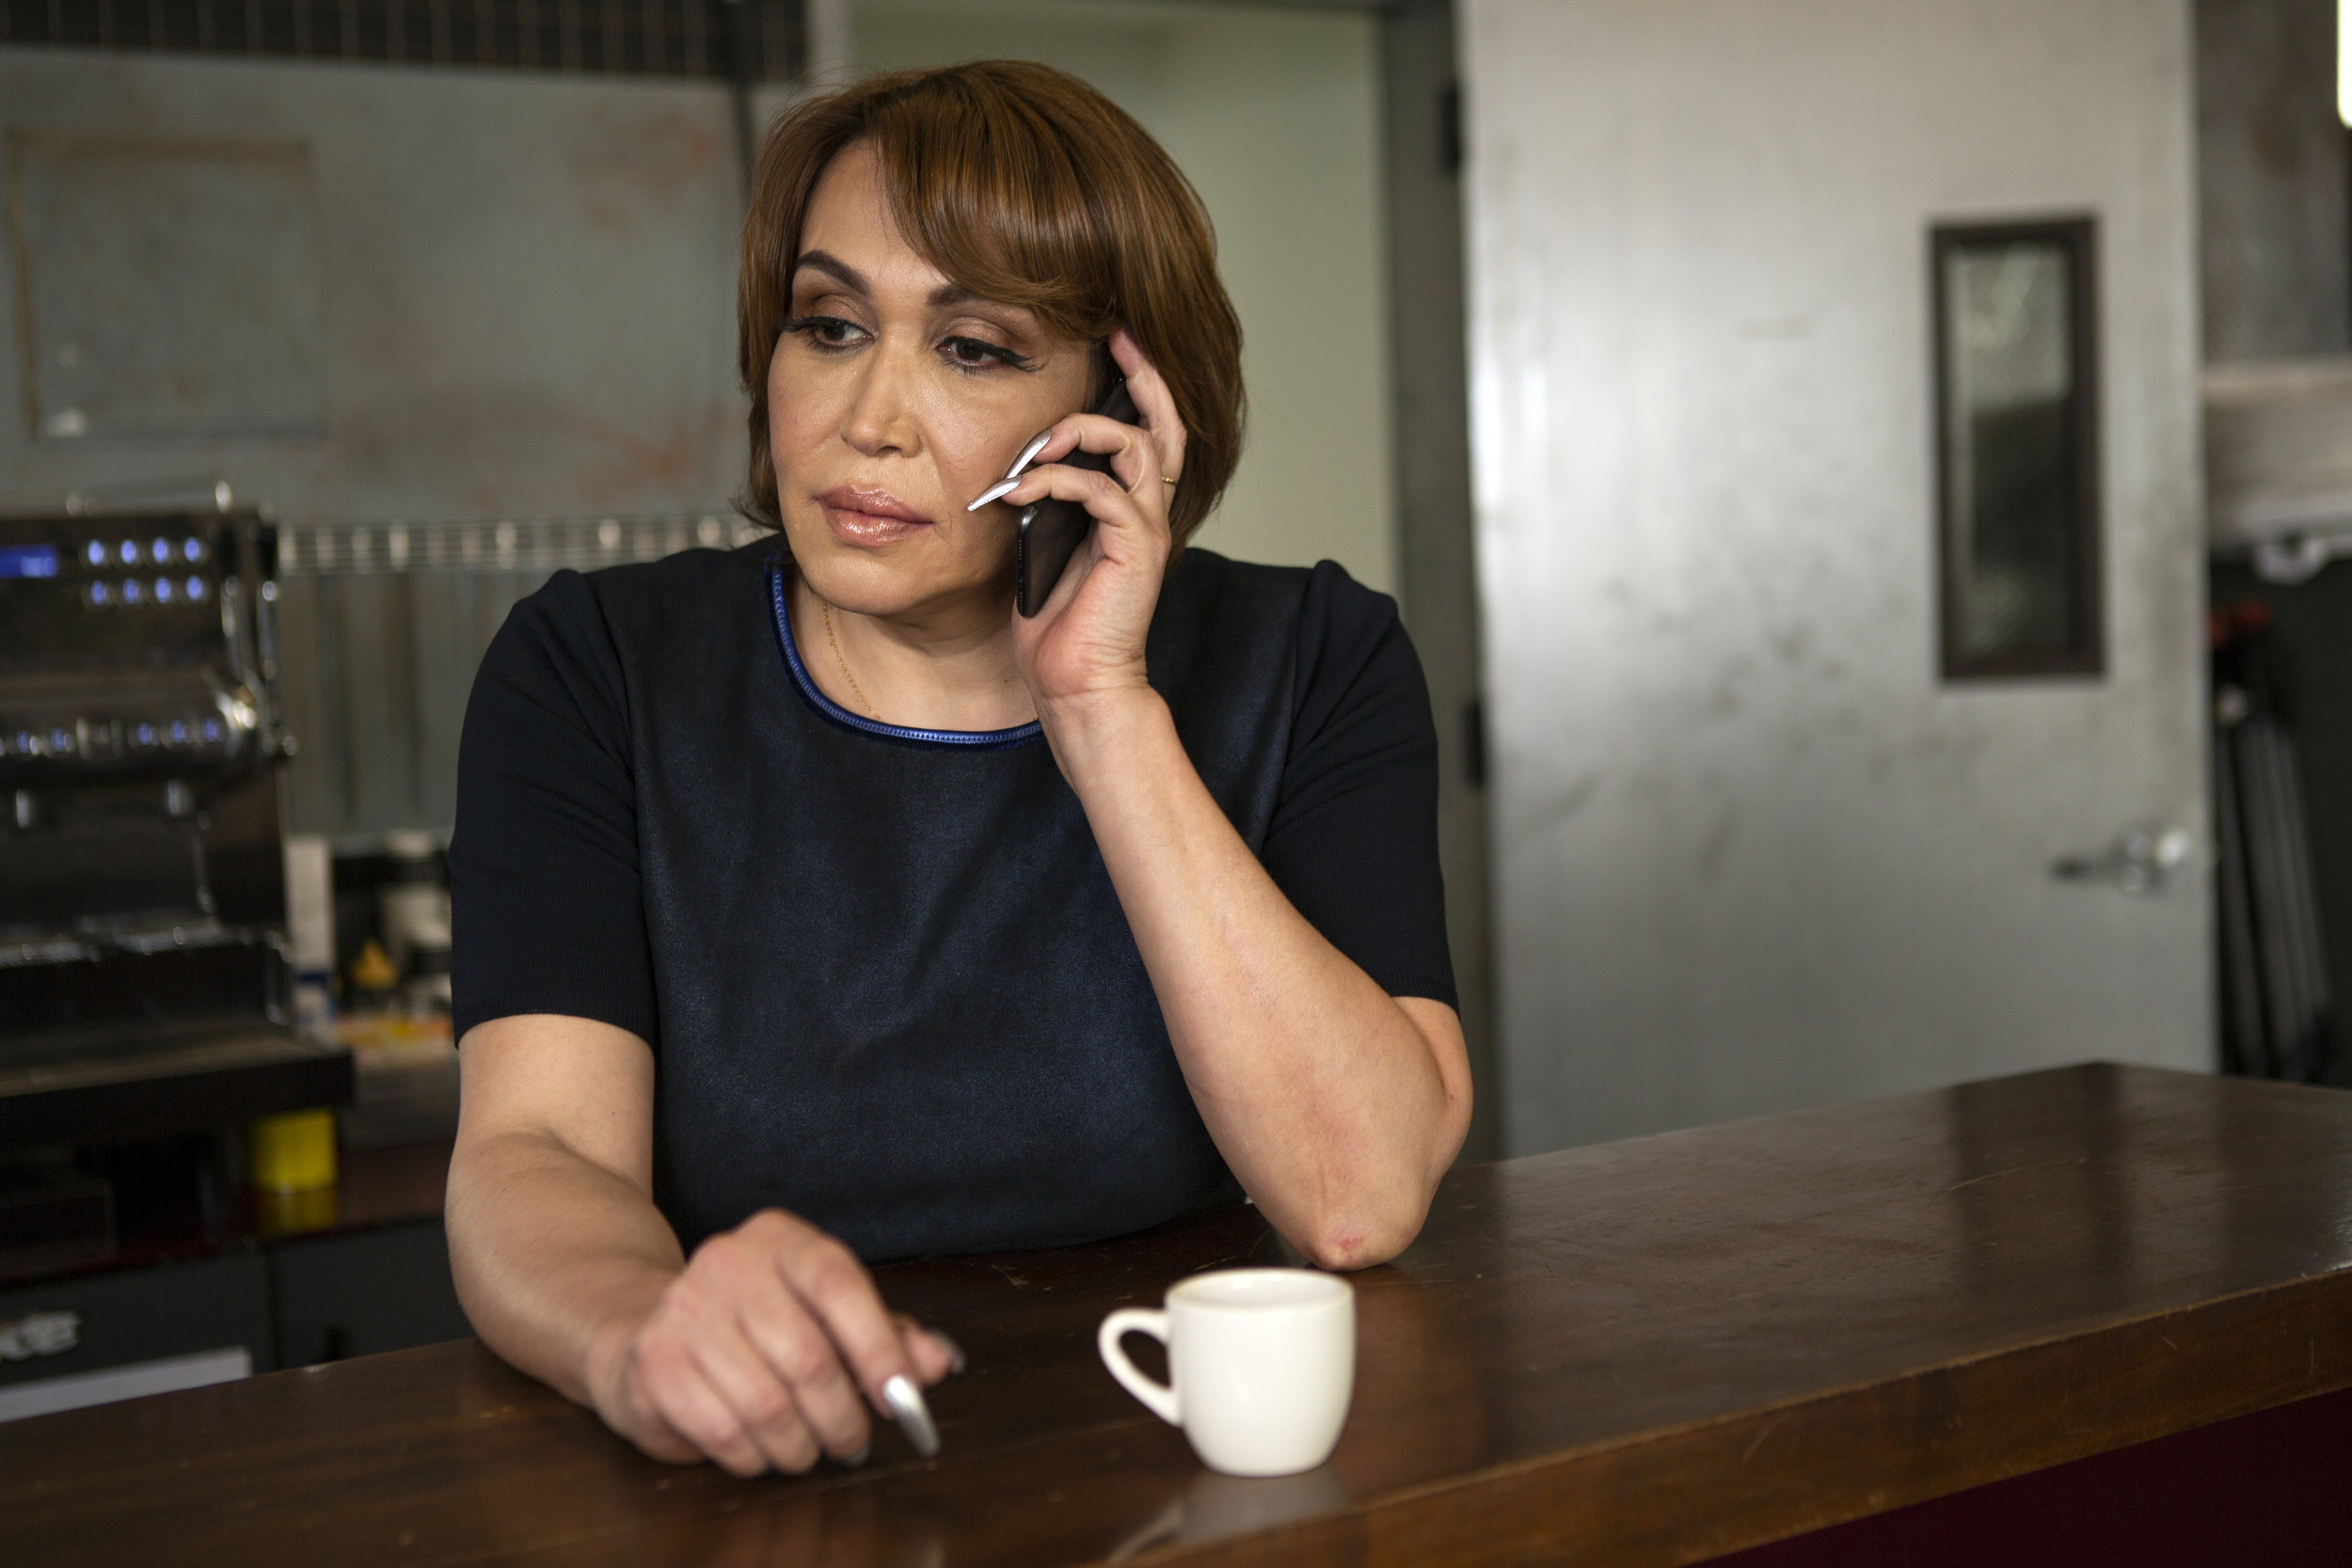 A transgender woman on the phone.jpg